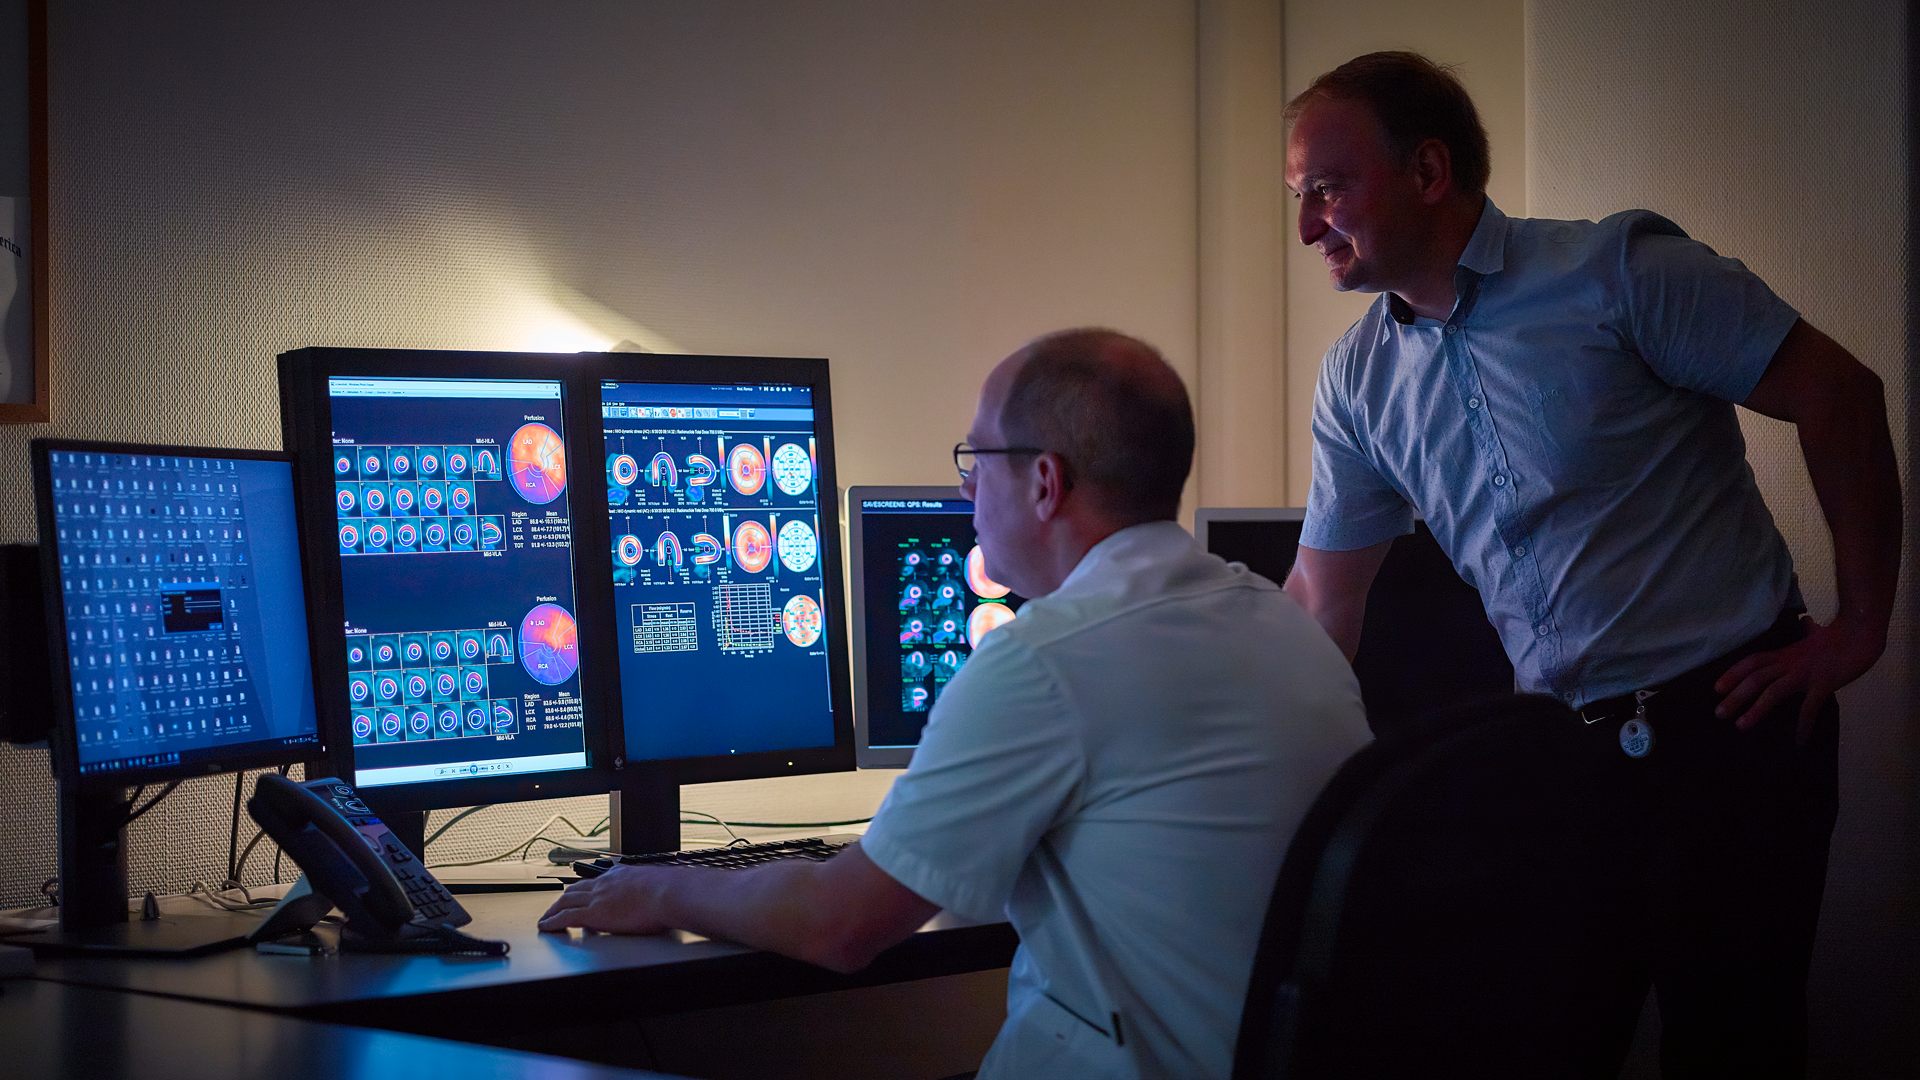 Dr. Remco Knol and Dr. Sergiy Lazarenko examine PET cardiac images at a workstation.